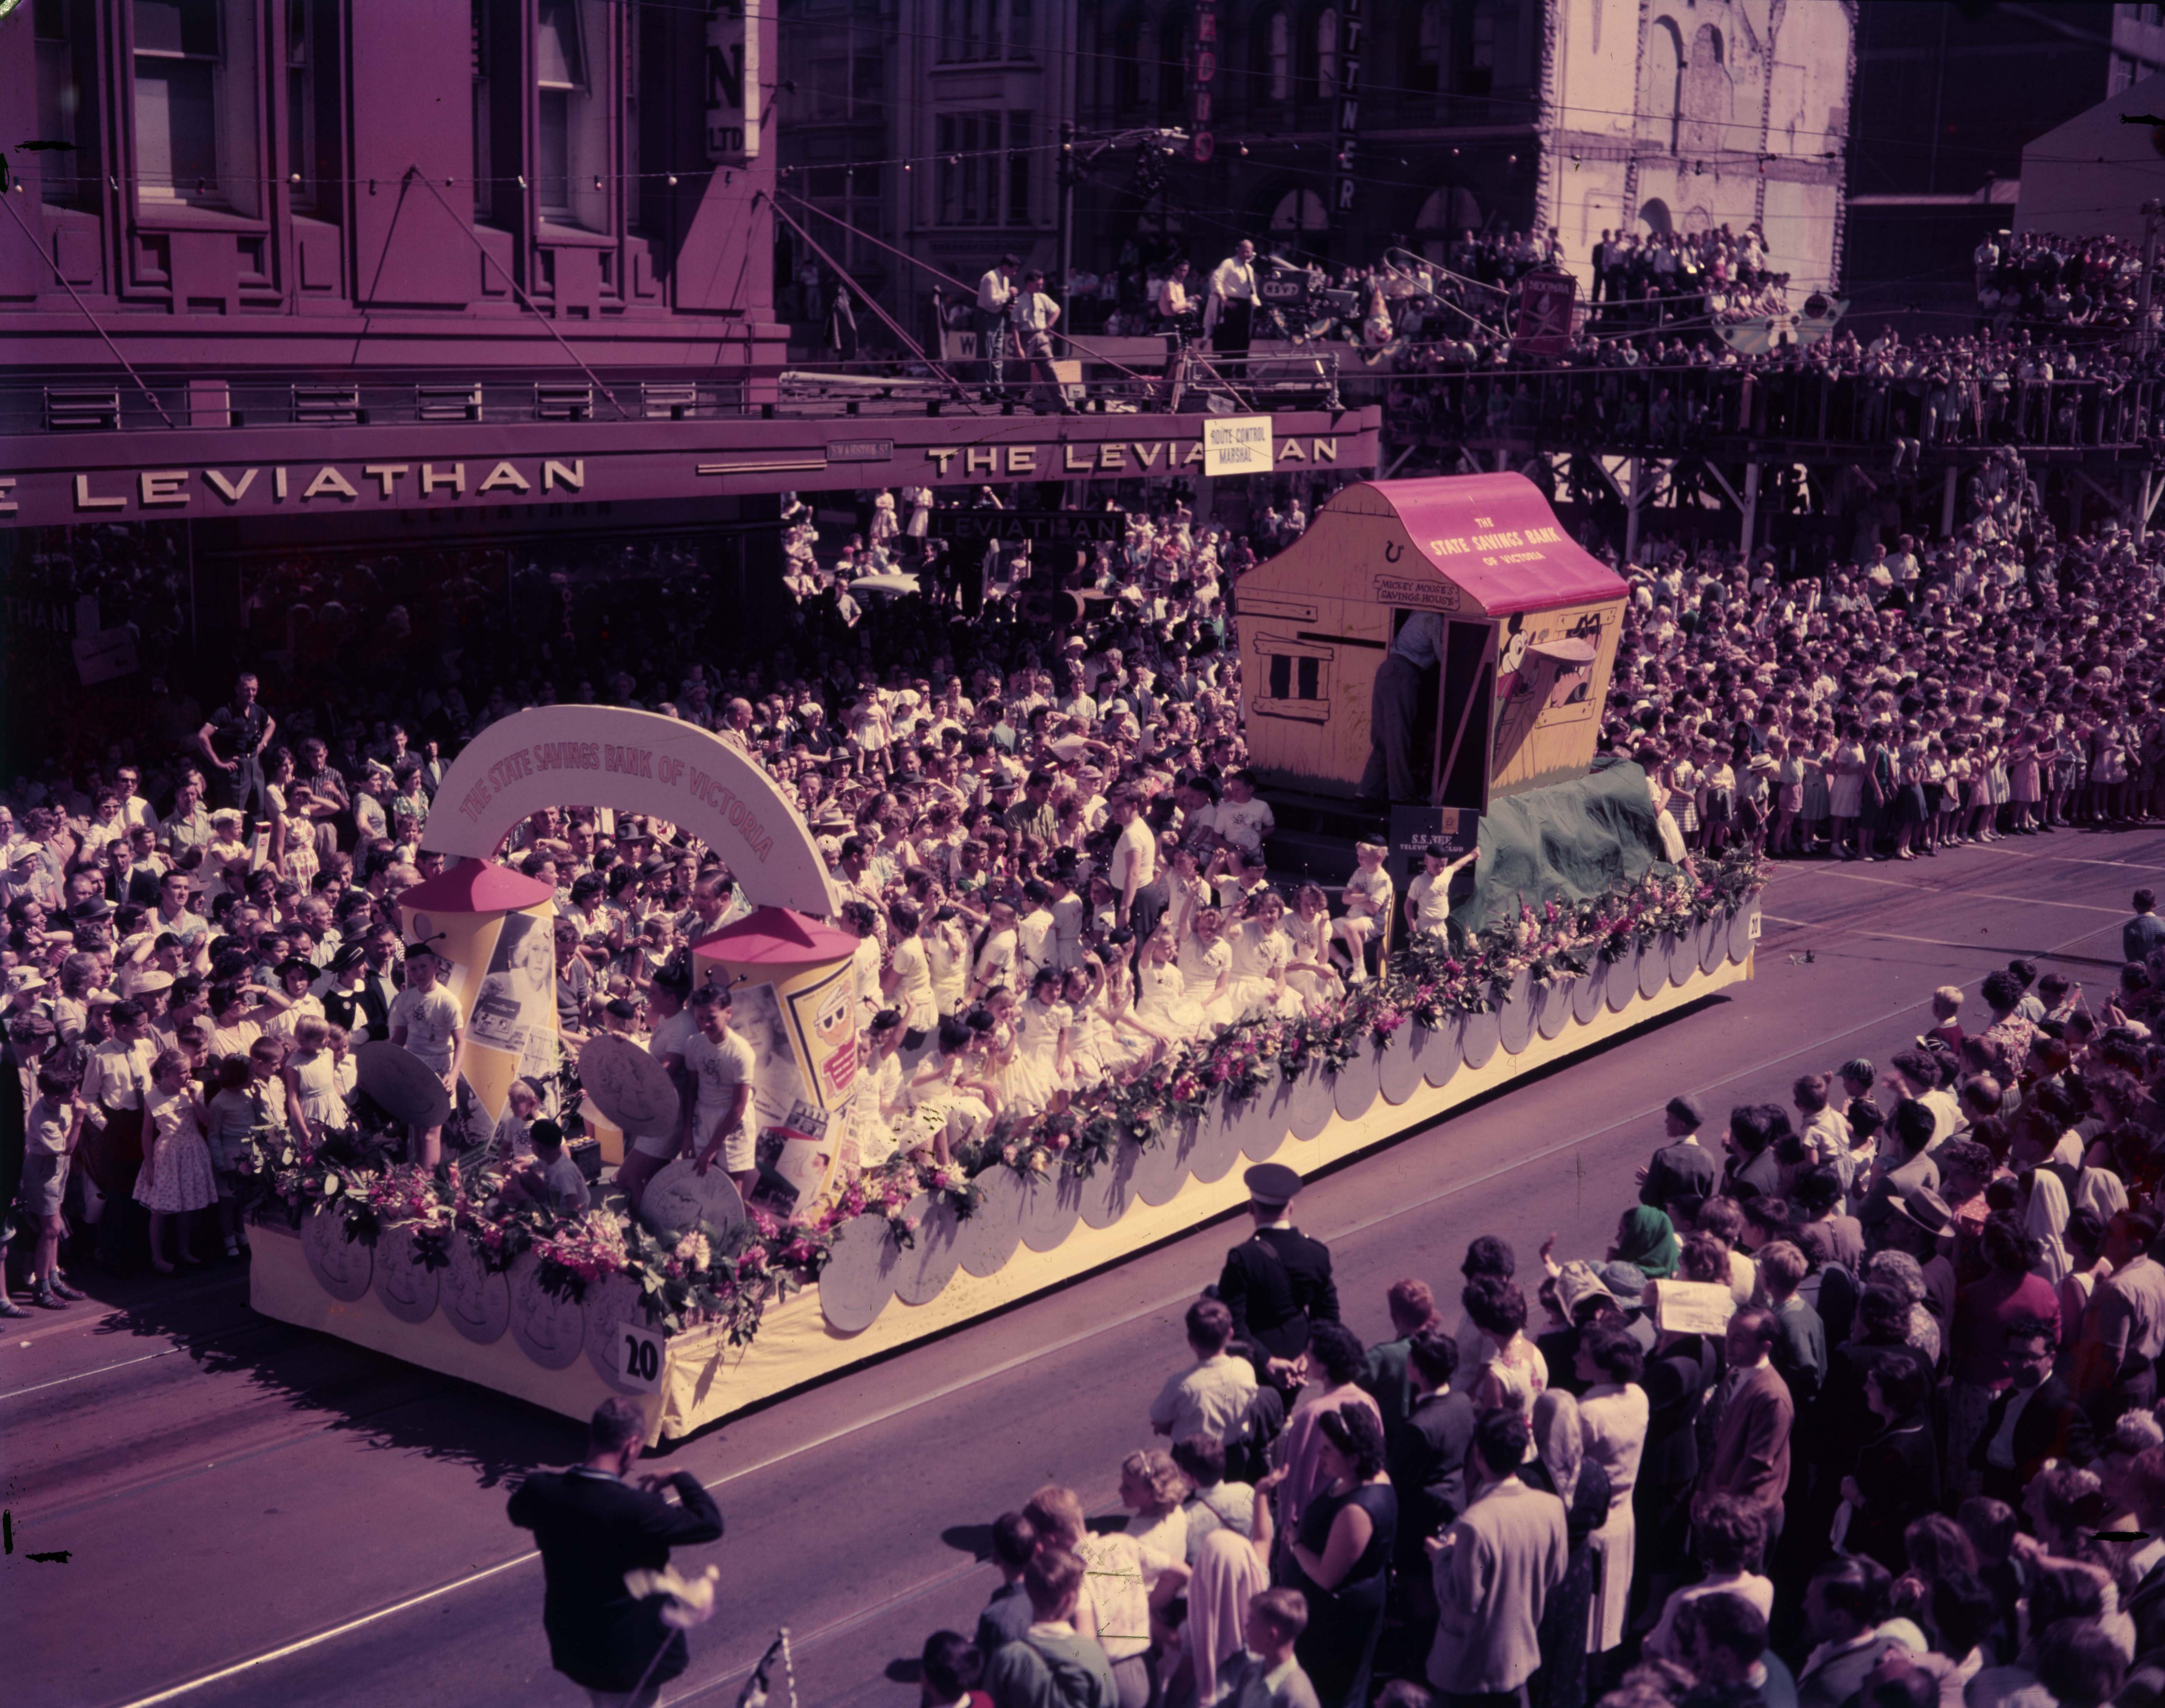 colour photo of the Mickey Mouse float headed down a packed Melbourne street during Moomba